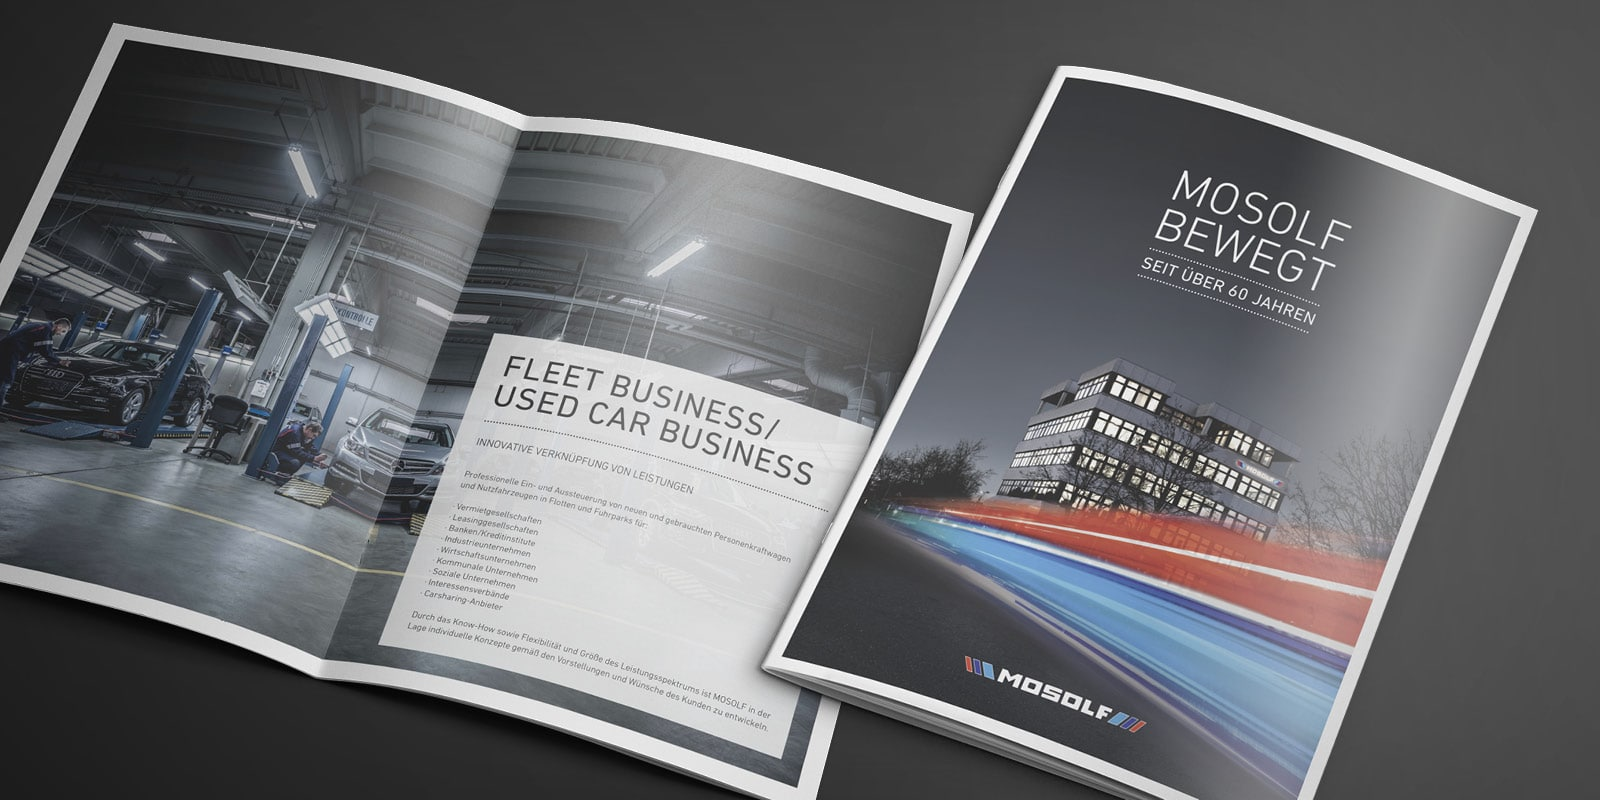 Mosolf – Fleet Business Broschüre